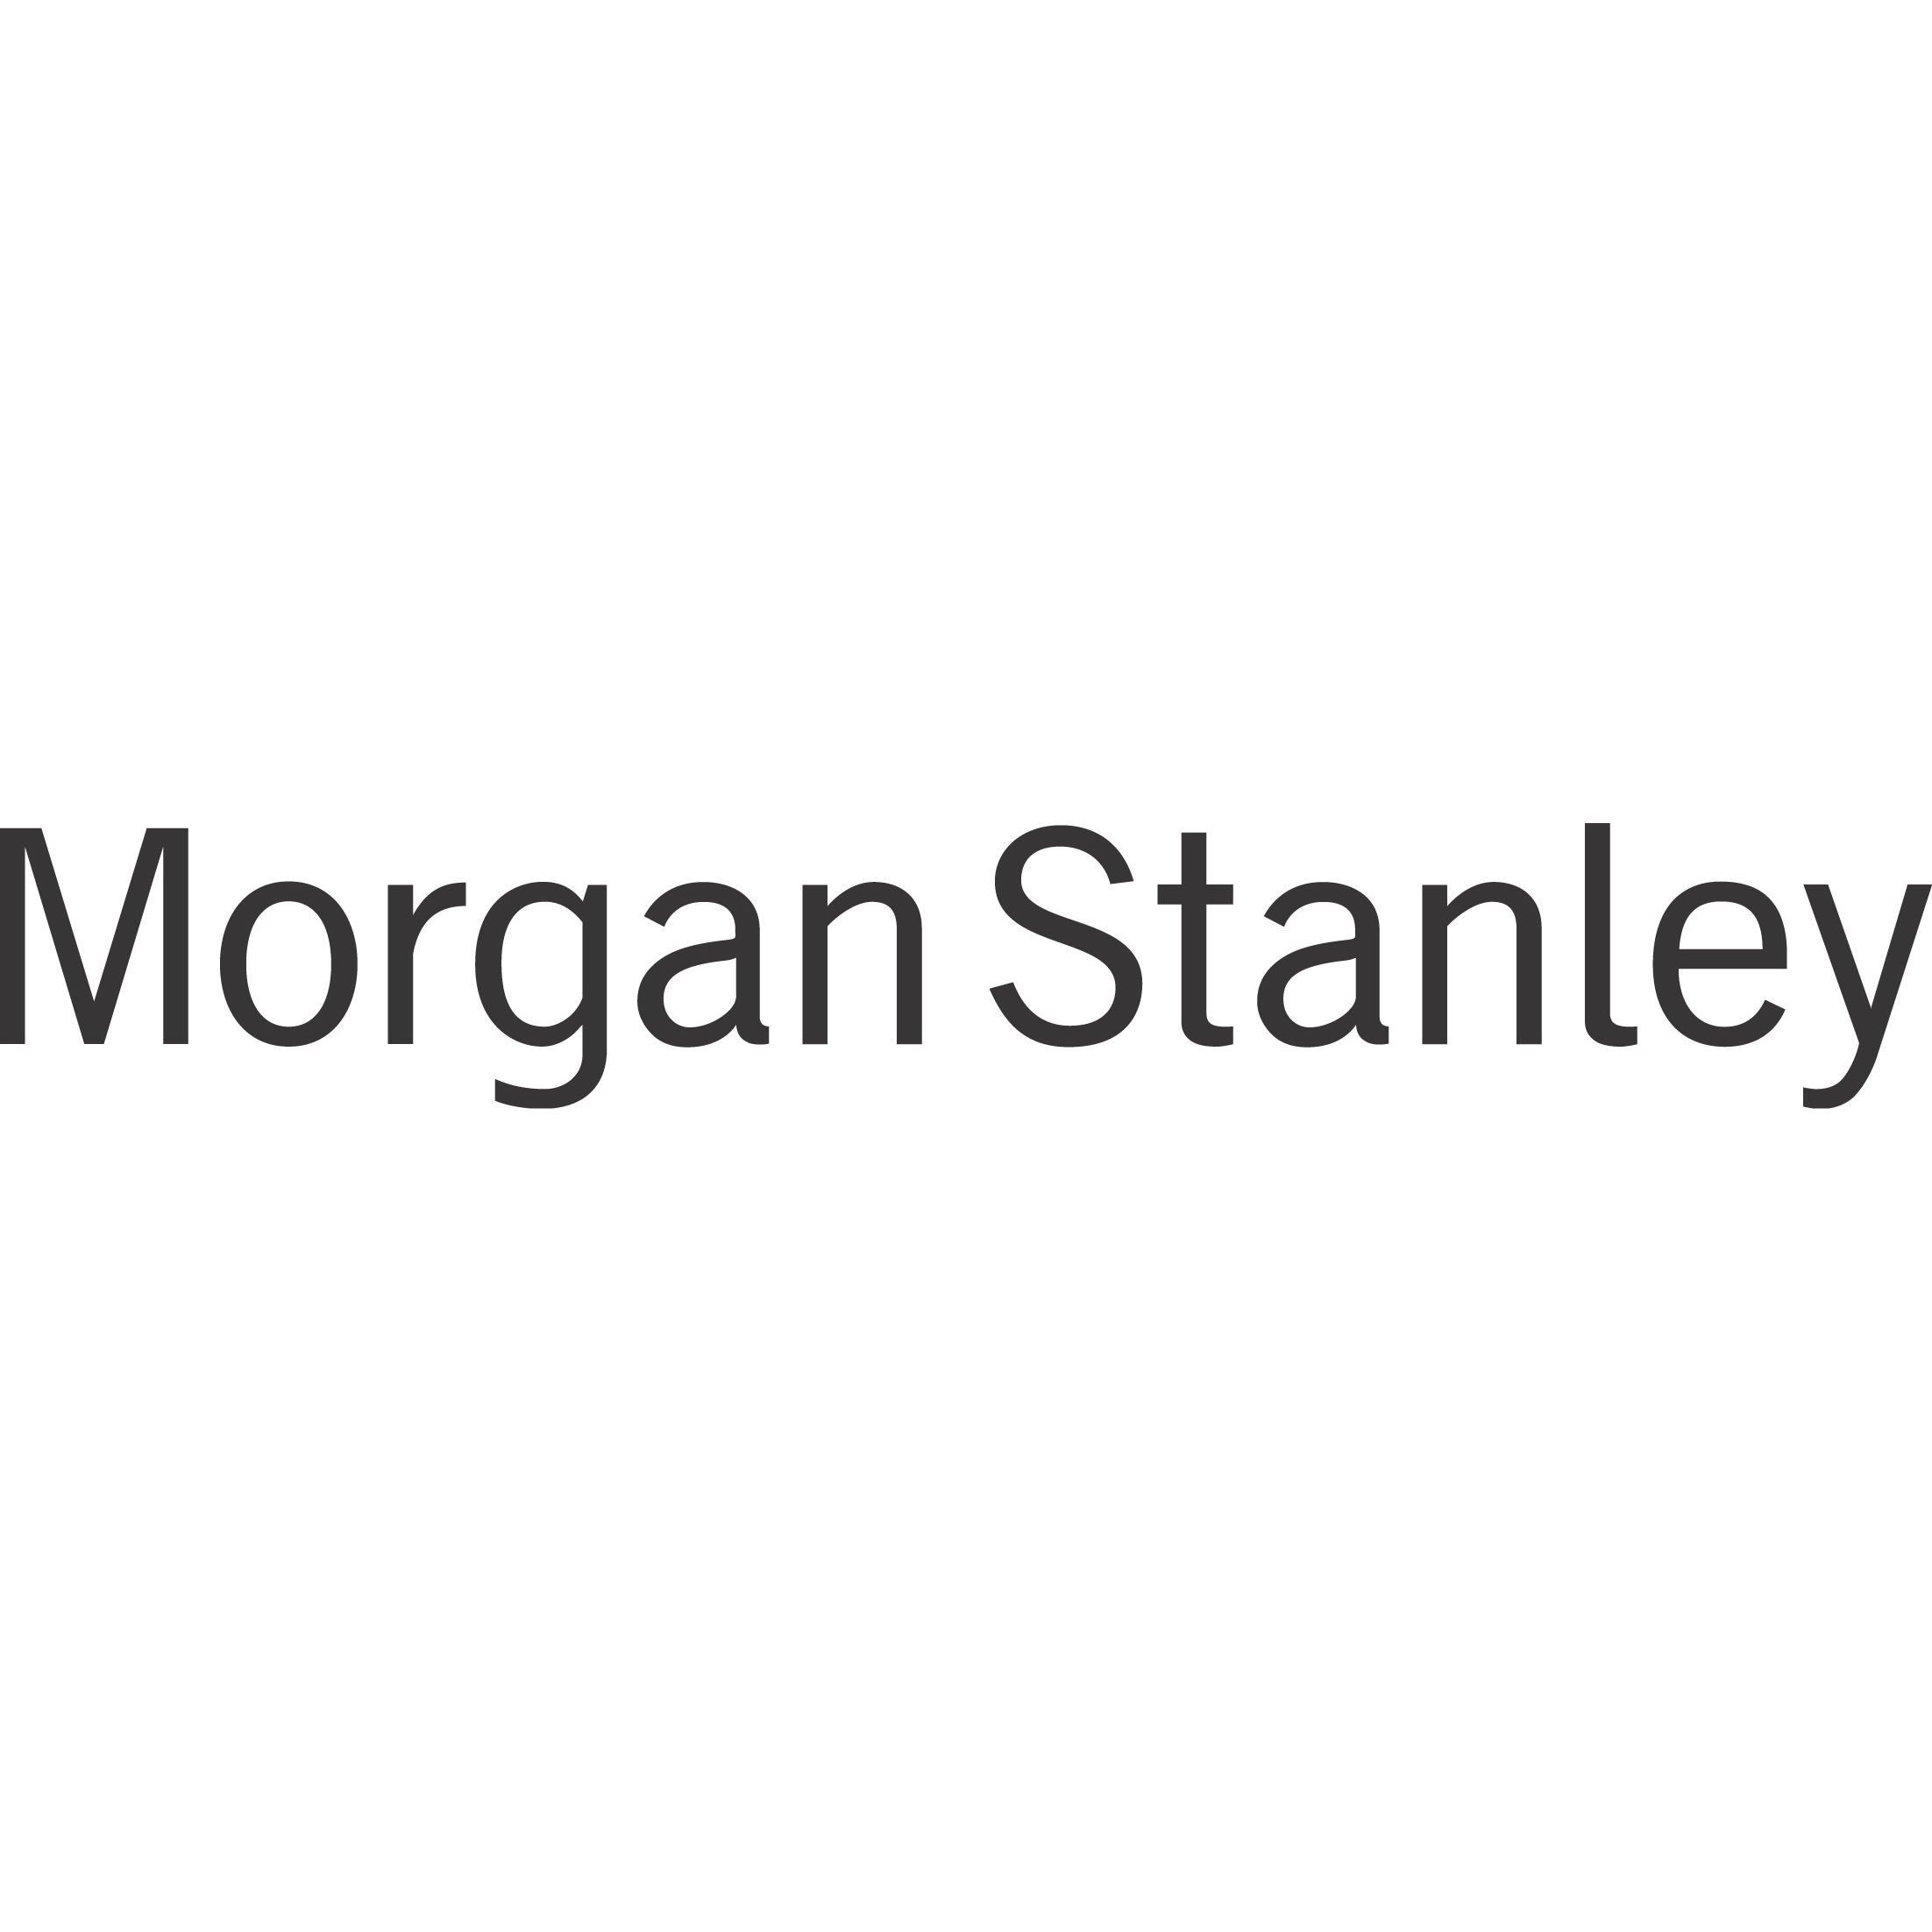 Sheli Vanderlinde - Morgan Stanley